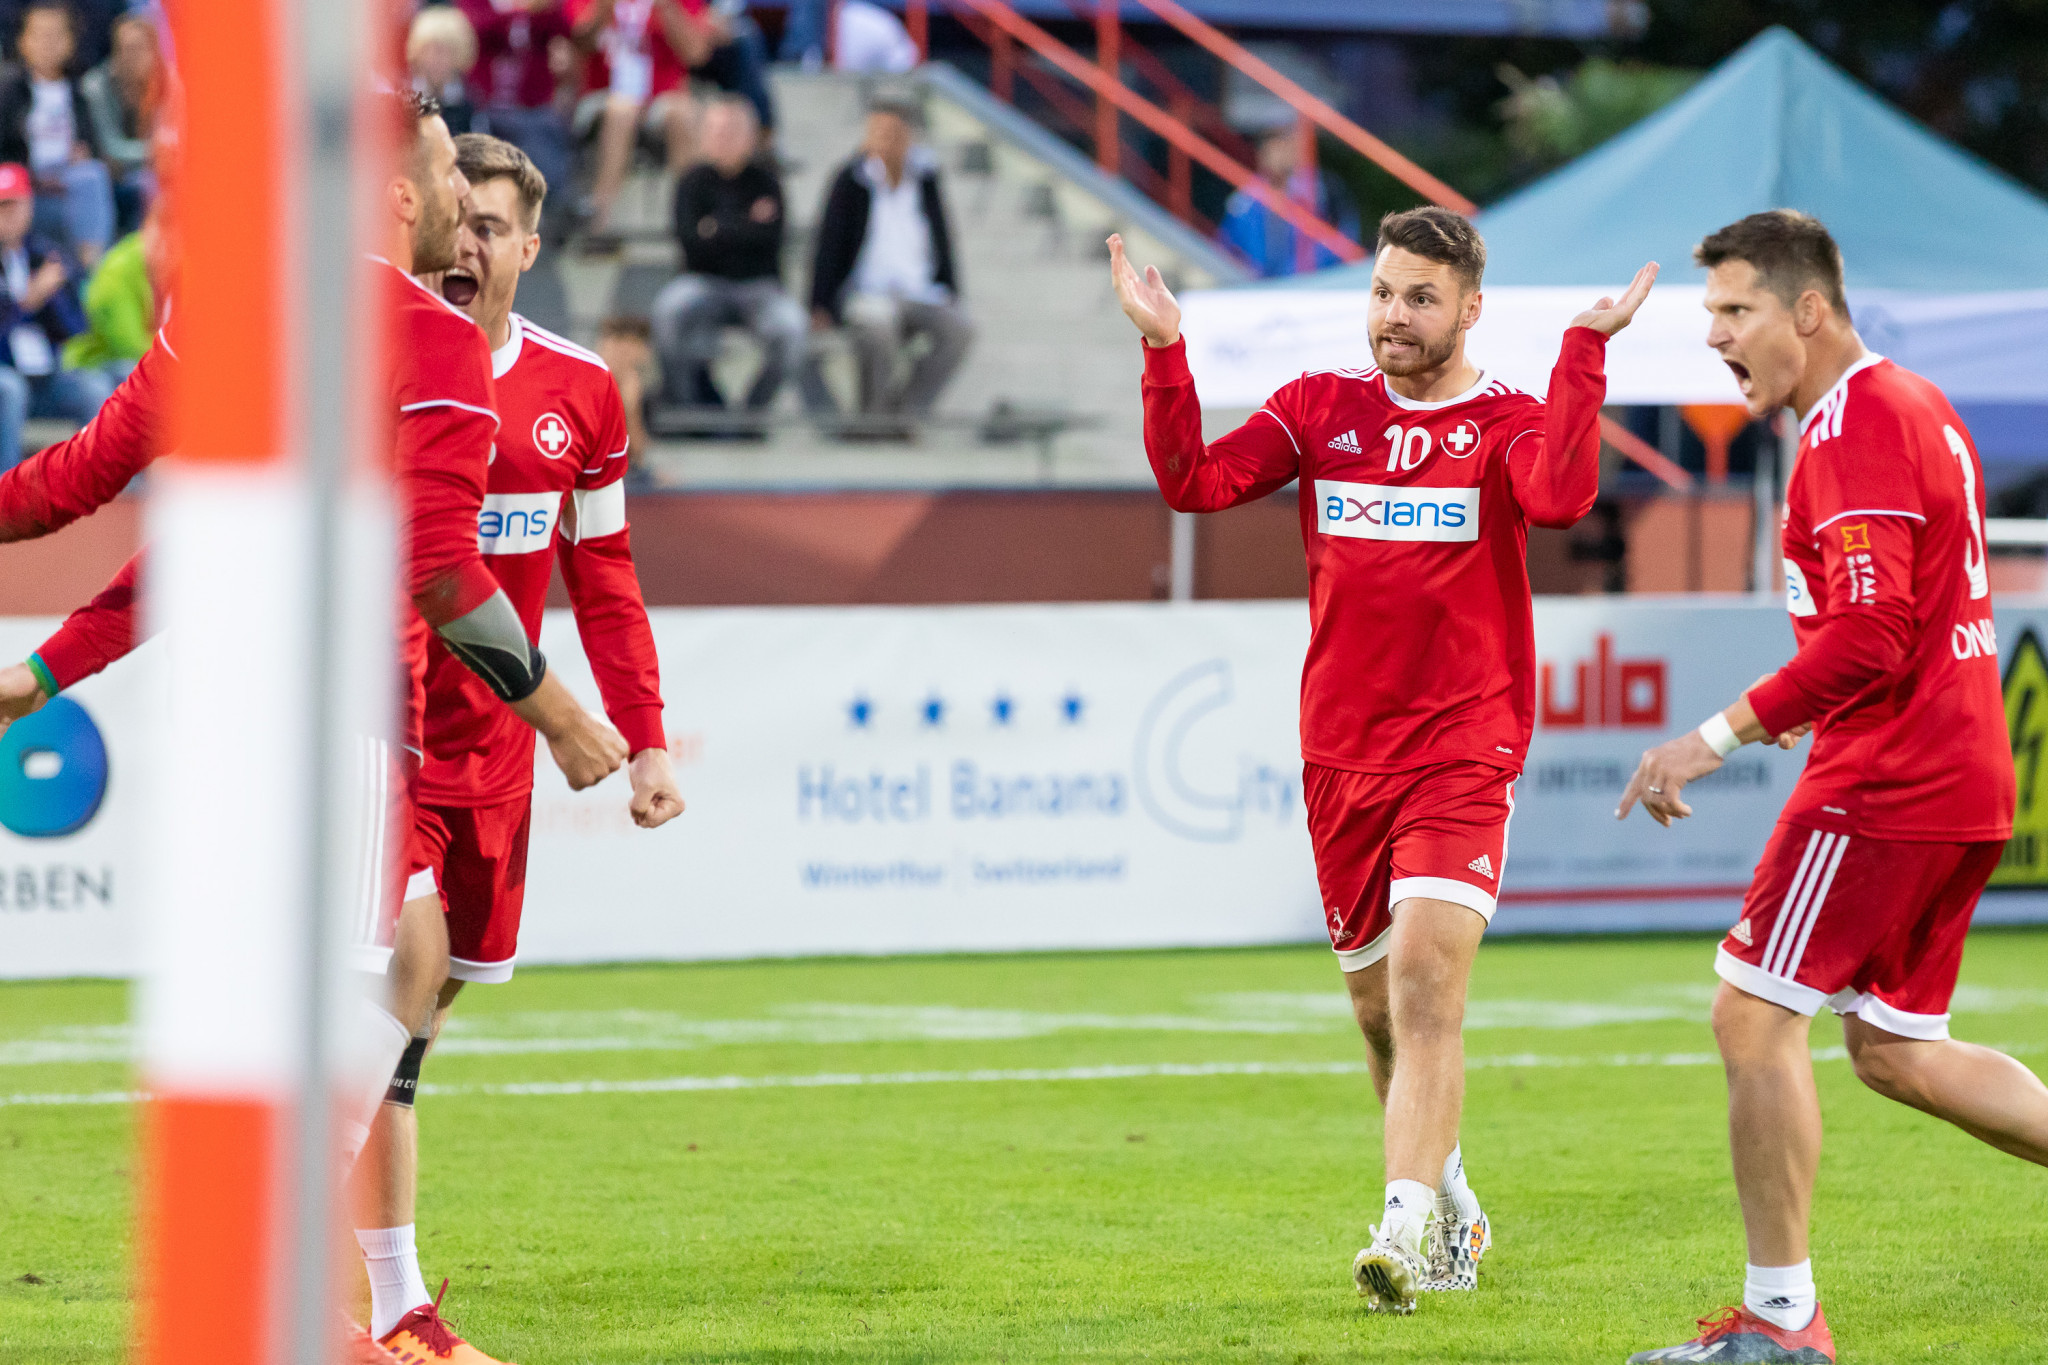 Hosts Switzerland were among the four teams that booked their place in the quarter-finals as action continued today at the International Fistball Association World Championship in Winterthur ©IFA 2019 Fistball World Championship